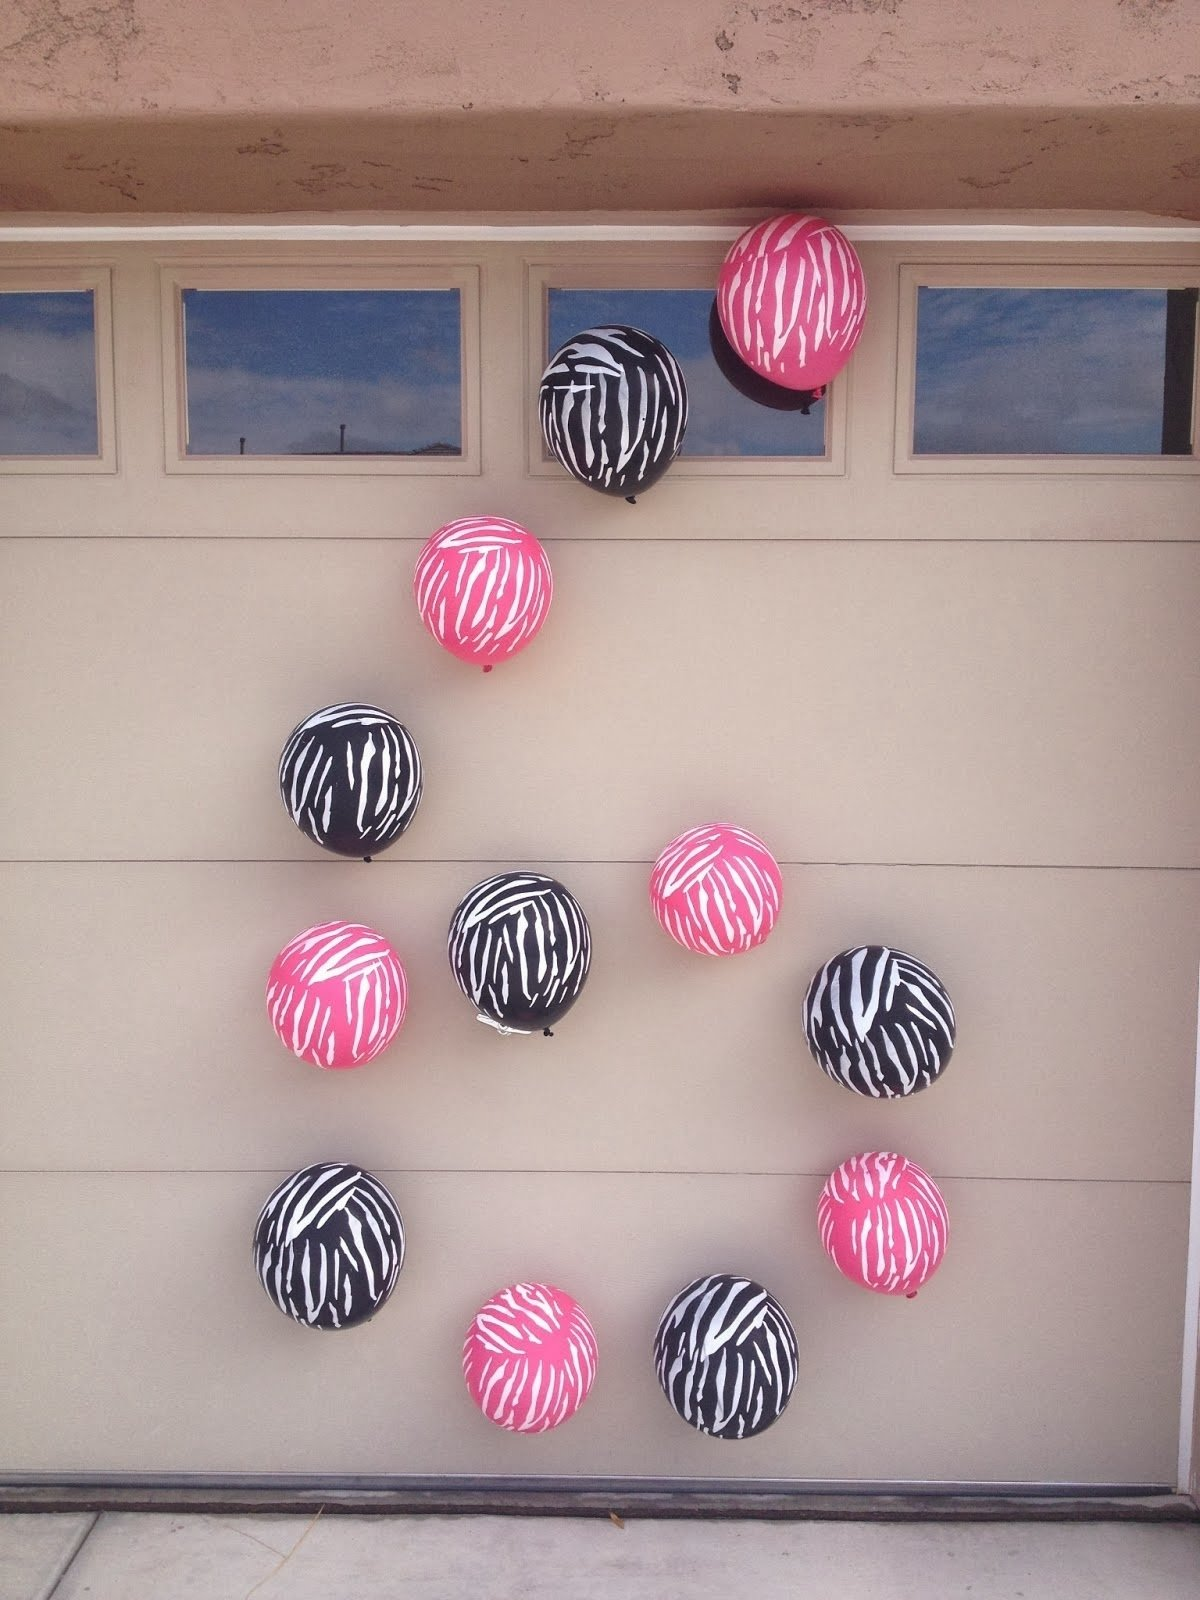 10 Great Birthday Party Ideas For Girls Age 6 20 ideas and activities to plan and decorate for a balloon birthday